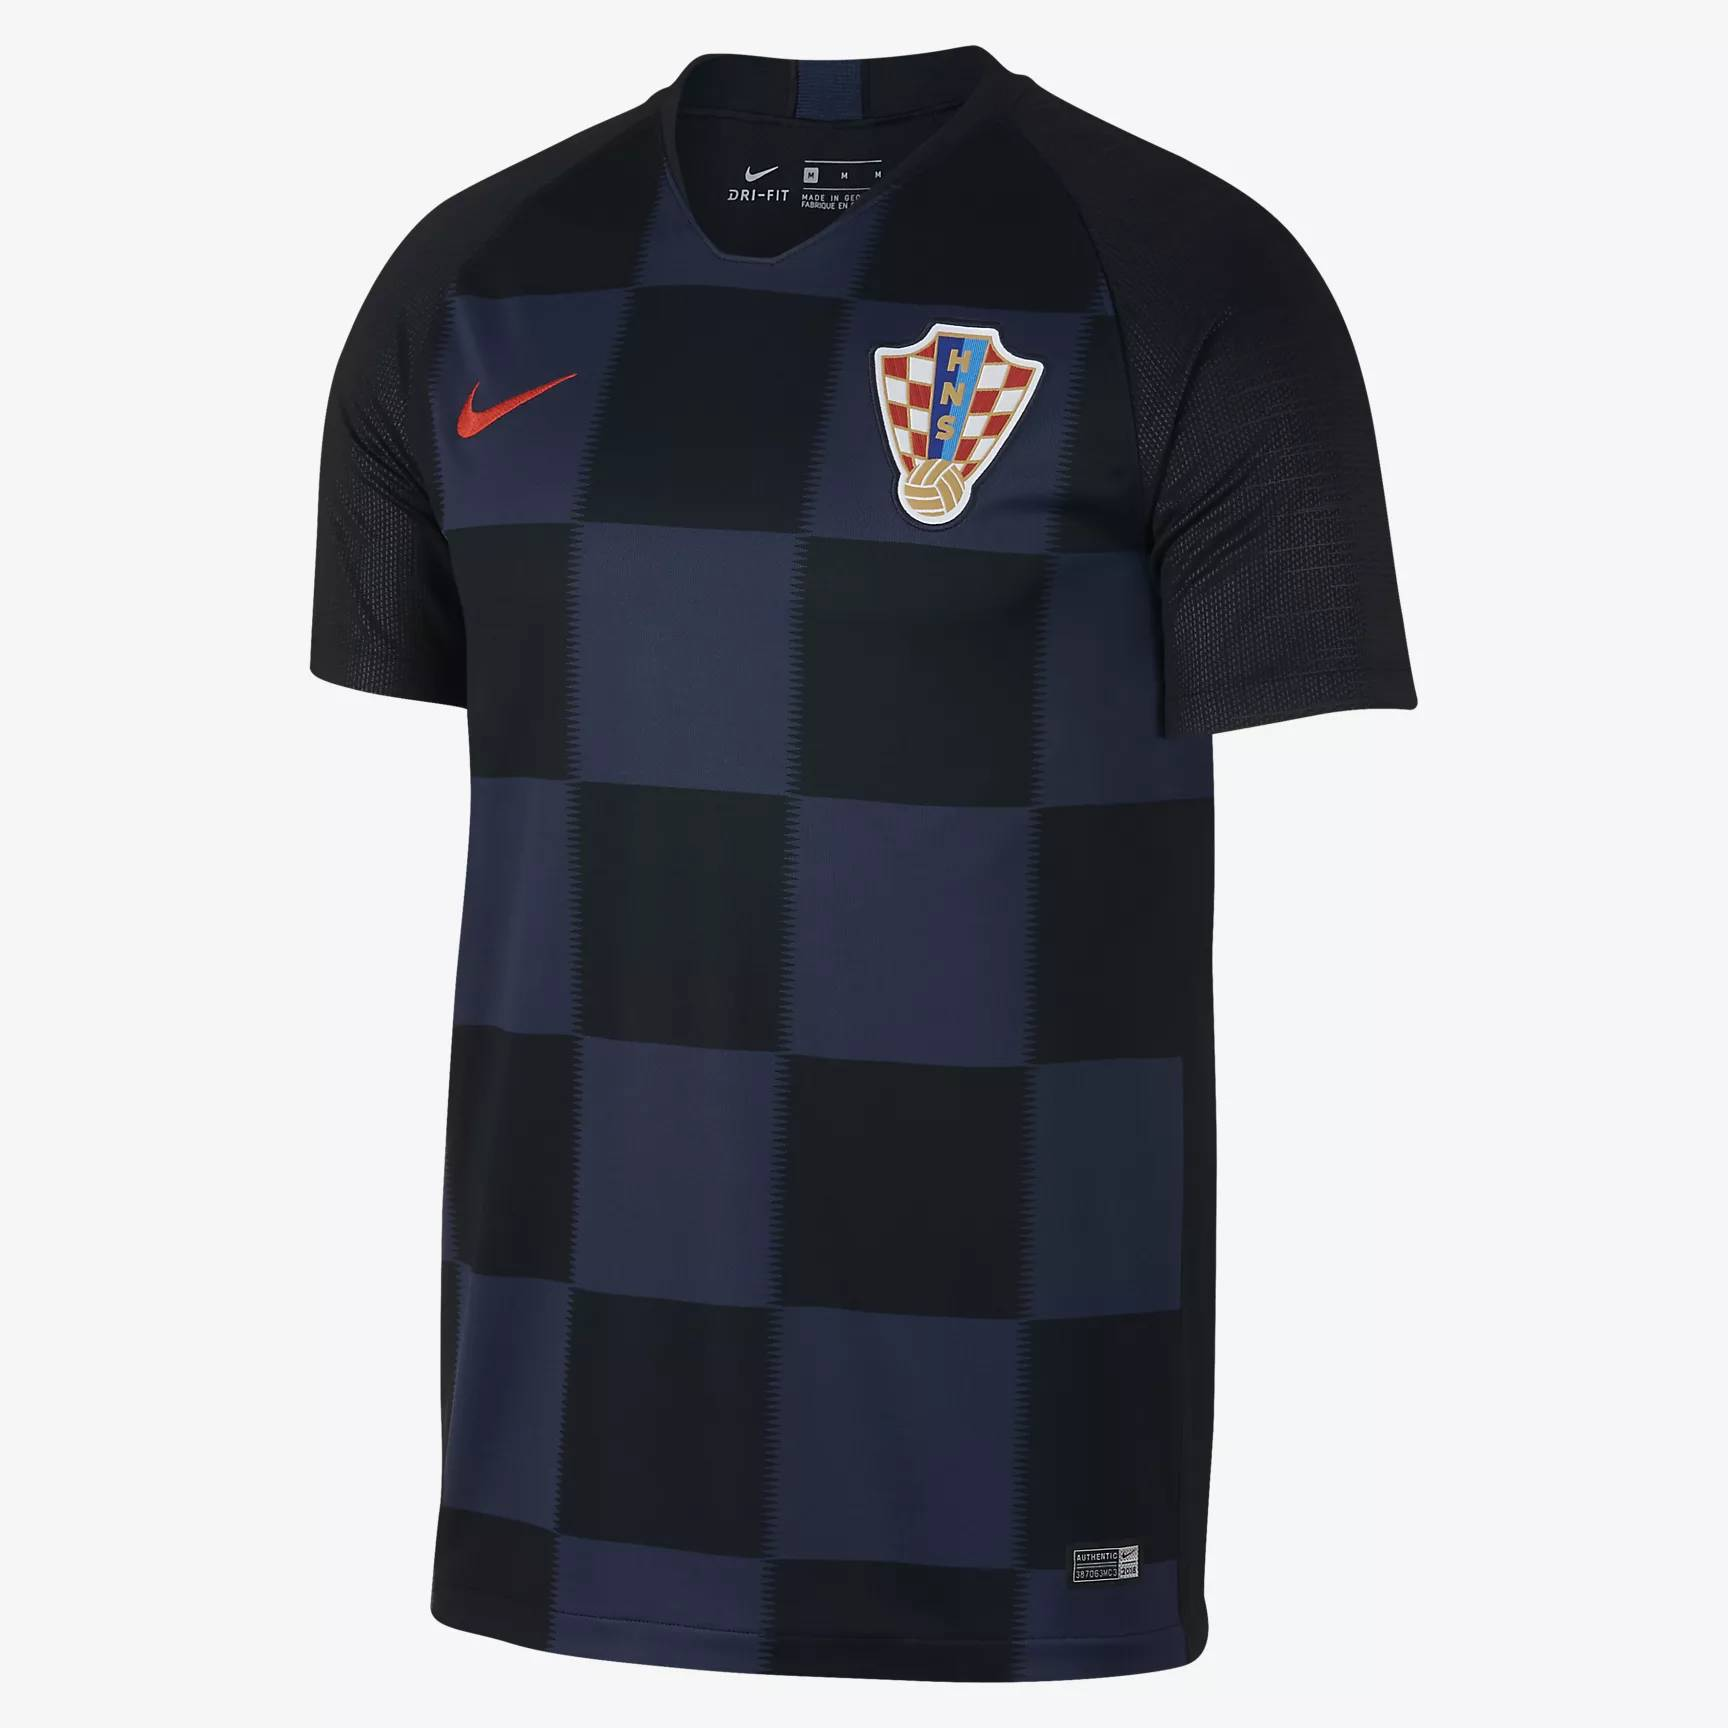 ... Croatia 2018 World Cup Nike Home Kit · Click to enlarge image  croatia 2018 world cup nike away kit 1.jpg ... a5b695d45